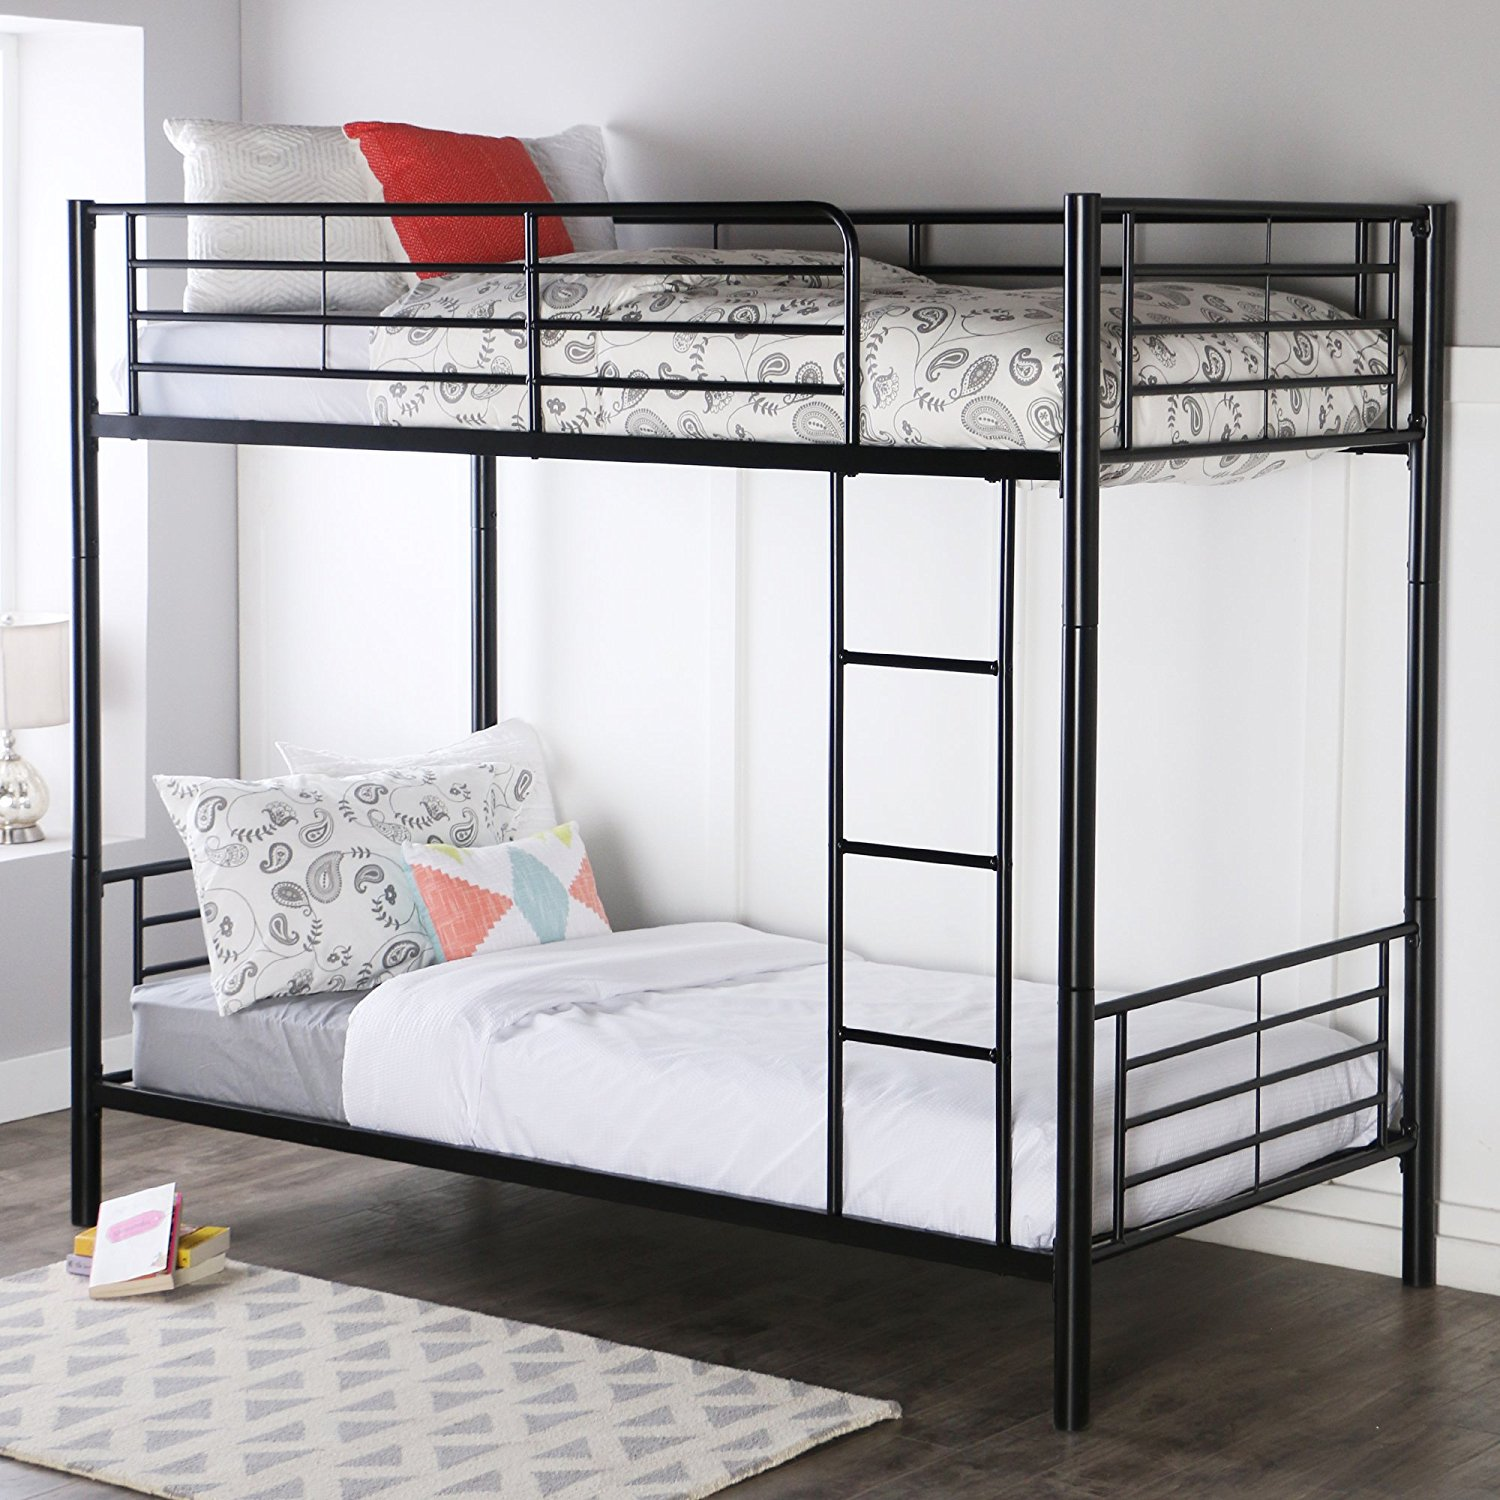 Best quality bunk beds